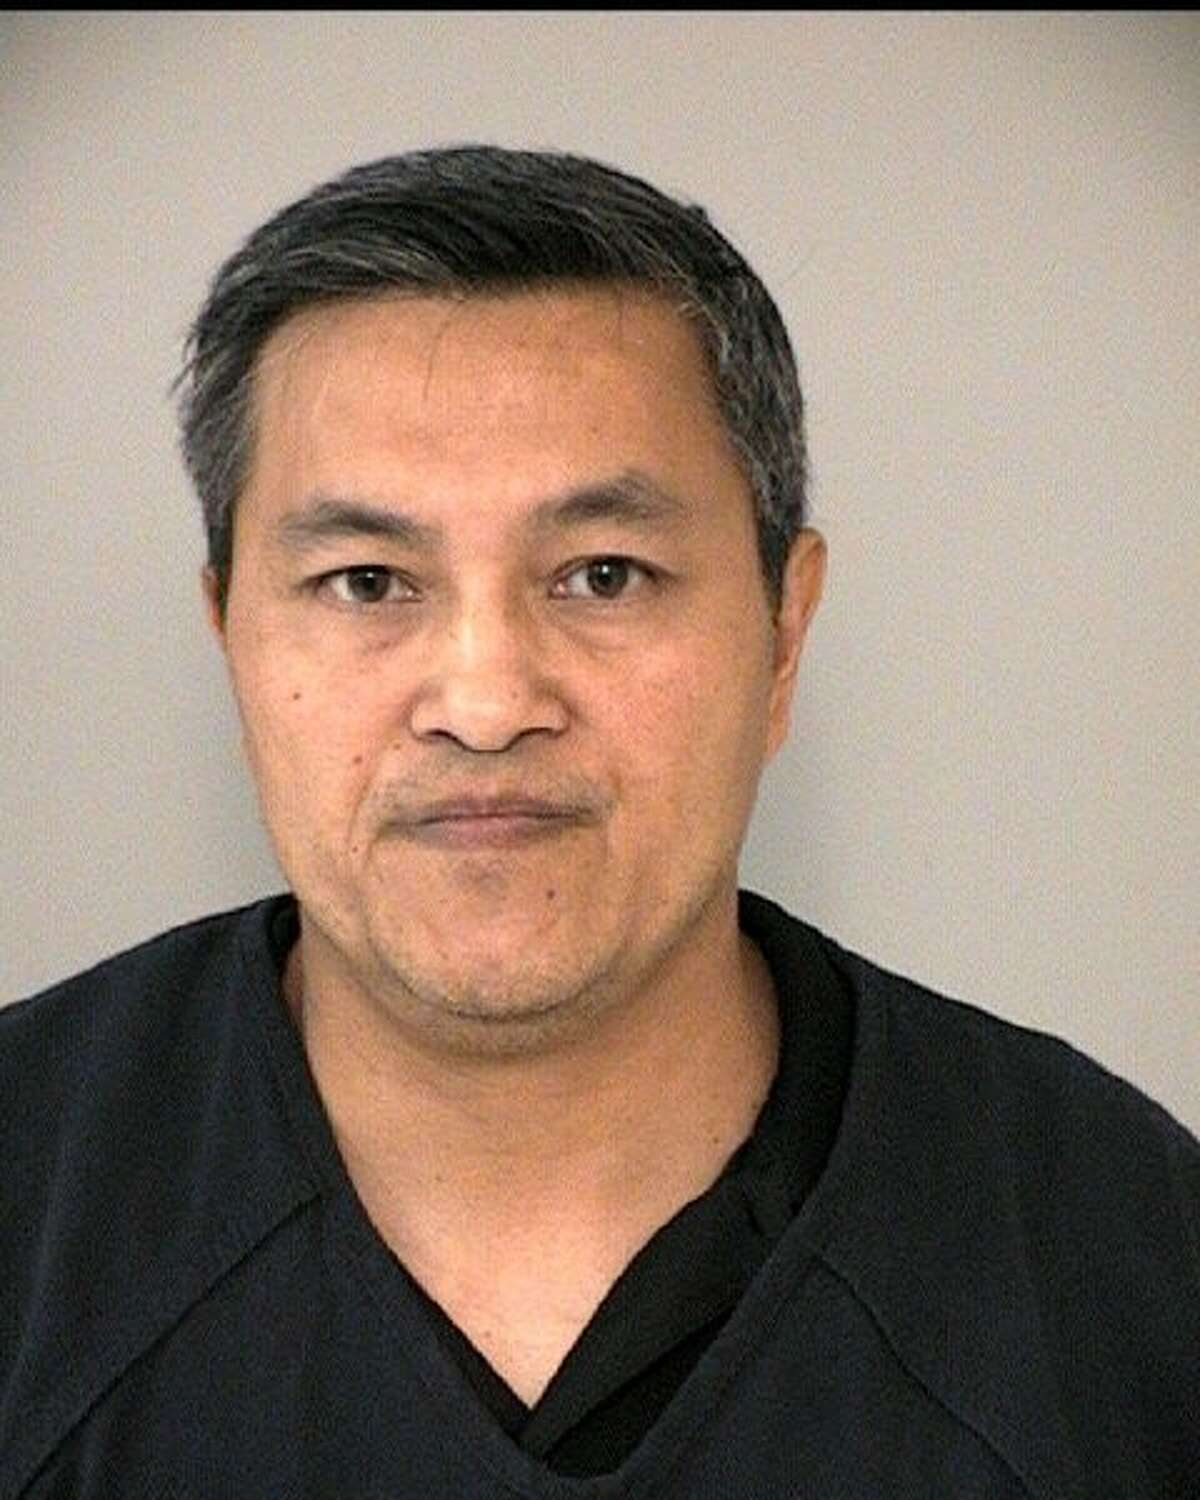 Danny Le, a 22-year veteran of the Houston Police Department, was arrested for allegedly trying to solicit sex during a sting operation in Fort Bend County, according to court records.